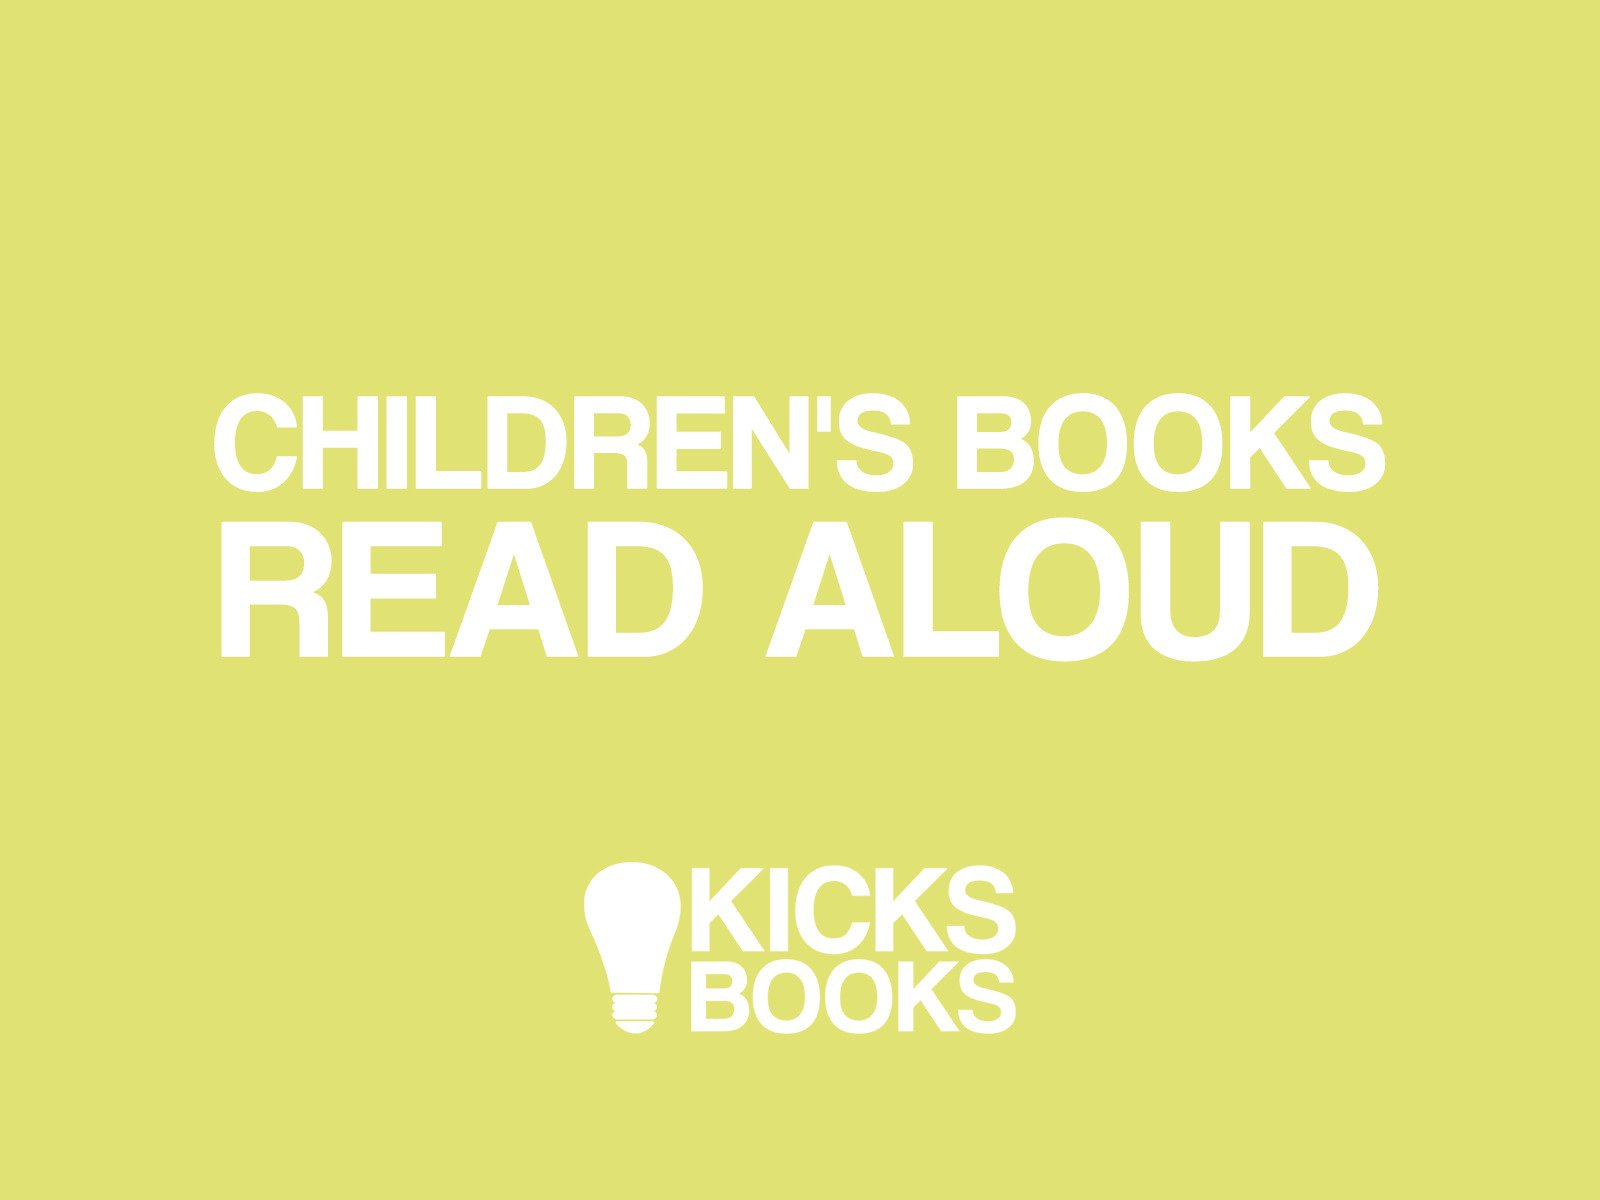 Children's Books Read Aloud | Kicks Books - Season 1